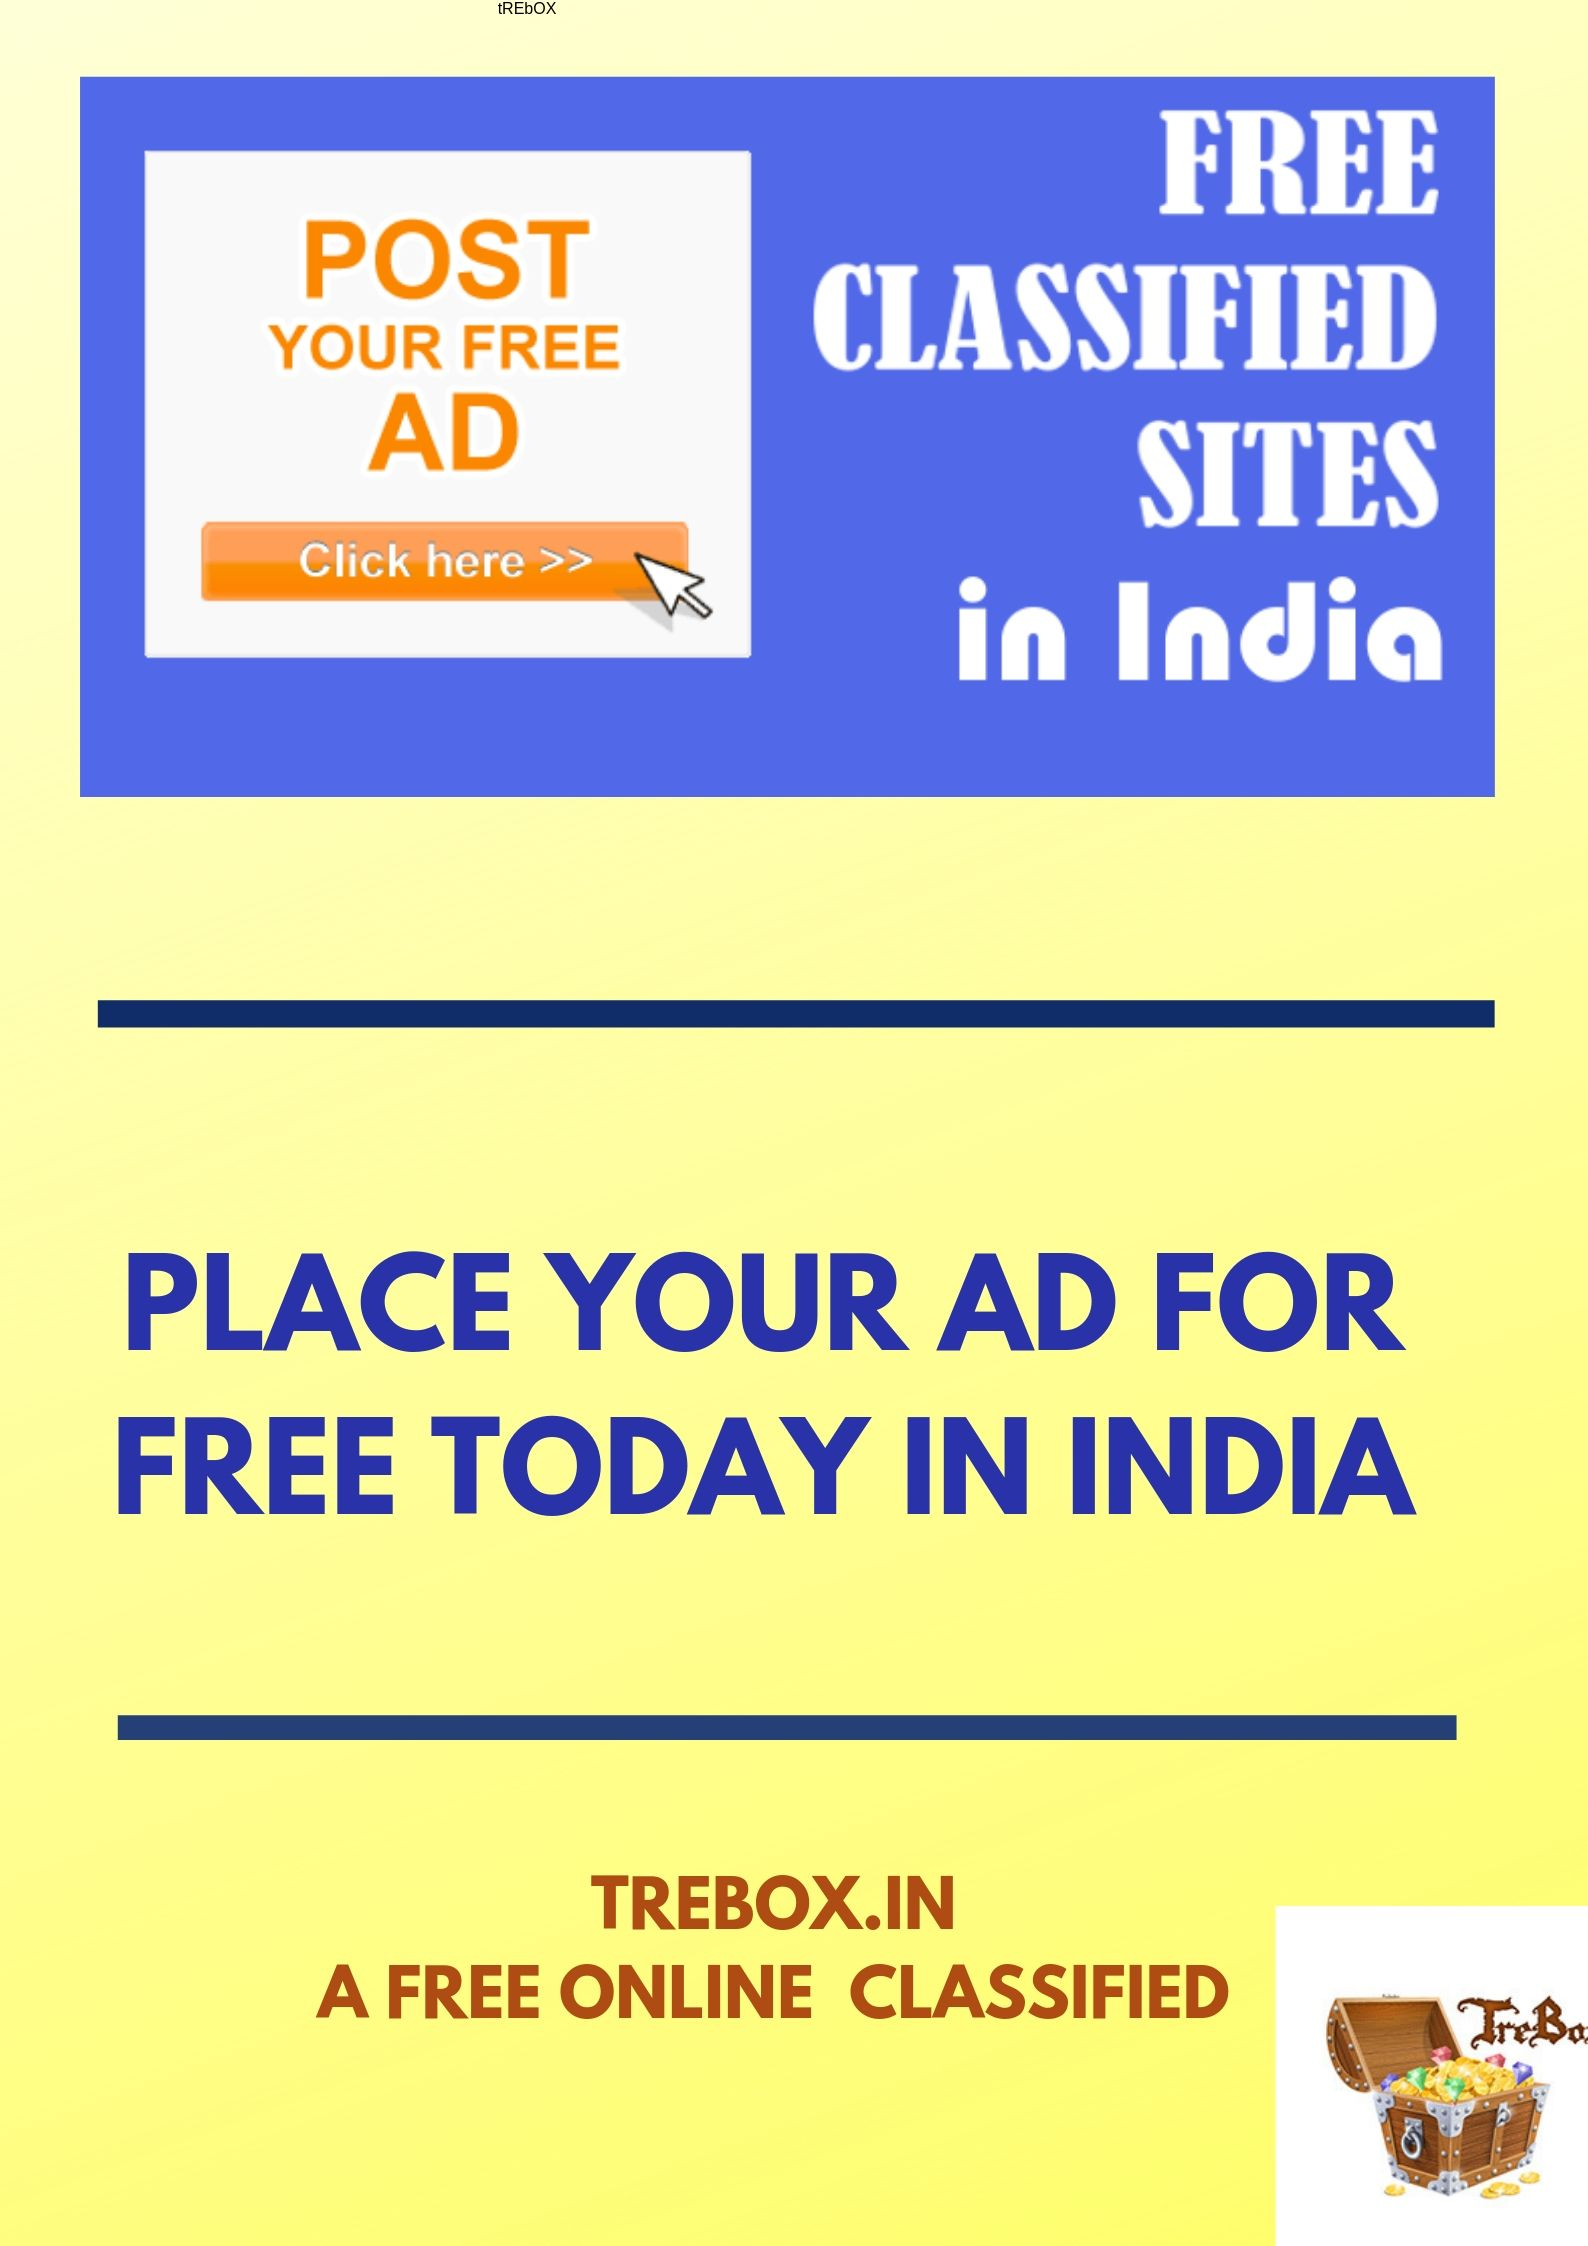 Post your sell item ads online in India by TreBox